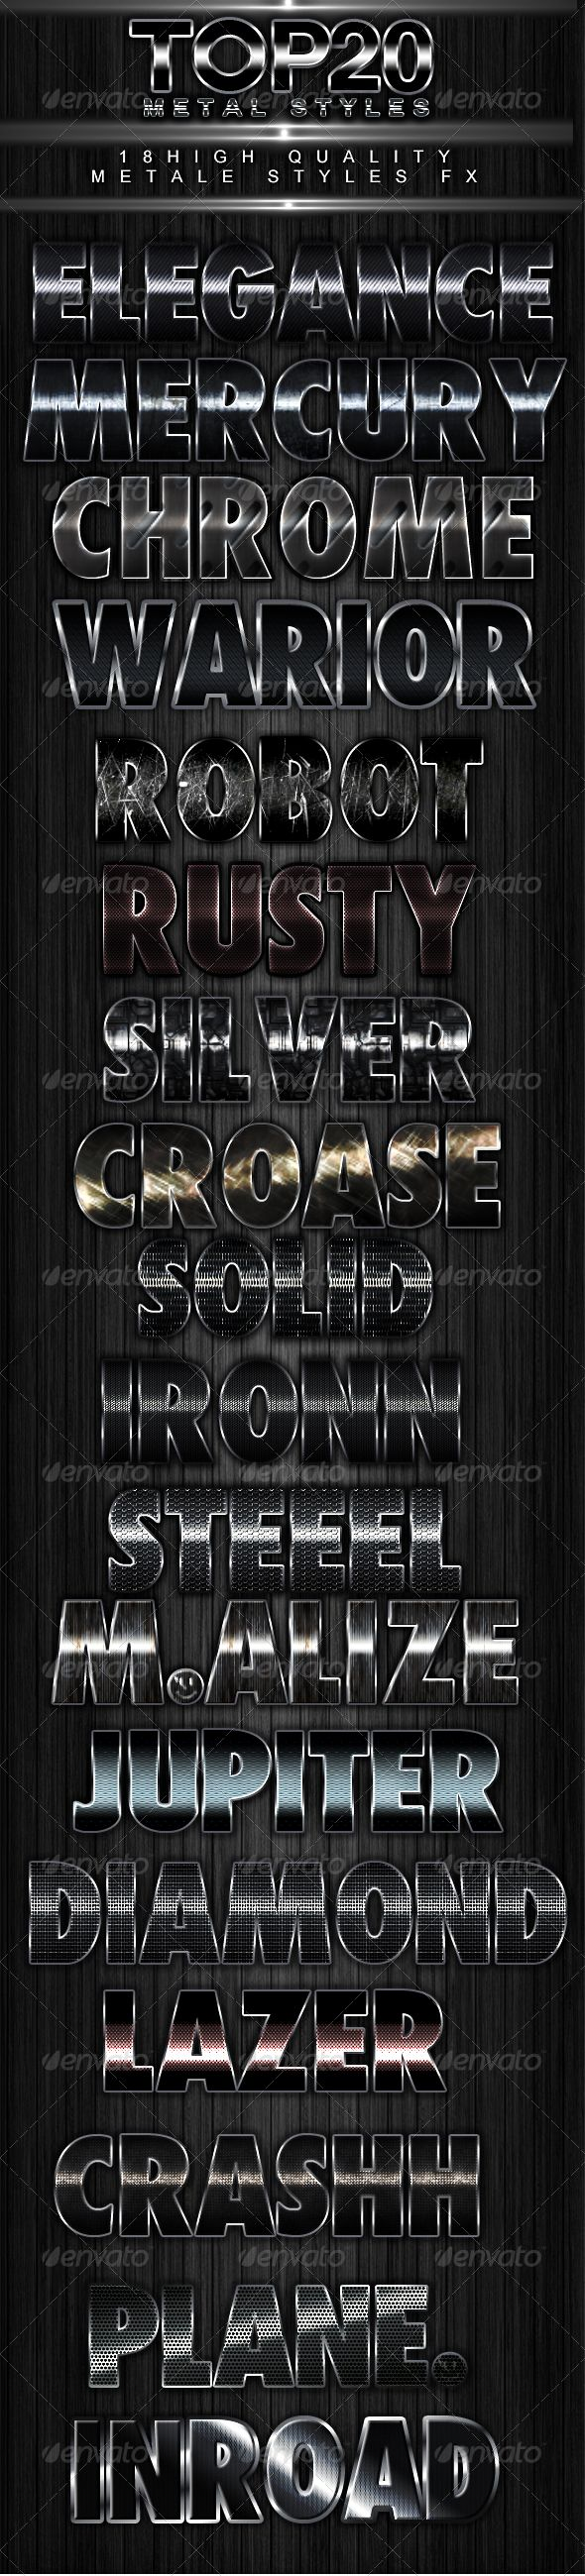 Top 18 metal styles  #GraphicRiver        ______  than'x for pershase   .dafont /watchmen.font ________ Follow Me : .facebook /jig4art   jig4art@gmail  _______ ENjoy With Graphicriver      Created: 1October12 Add-onFilesIncluded: LayeredPSD #PhotoshopASL MinimumAdobeCSVersion: CS Tags: chromestyles #fx #metale #metalestyles #styles #texteeffet